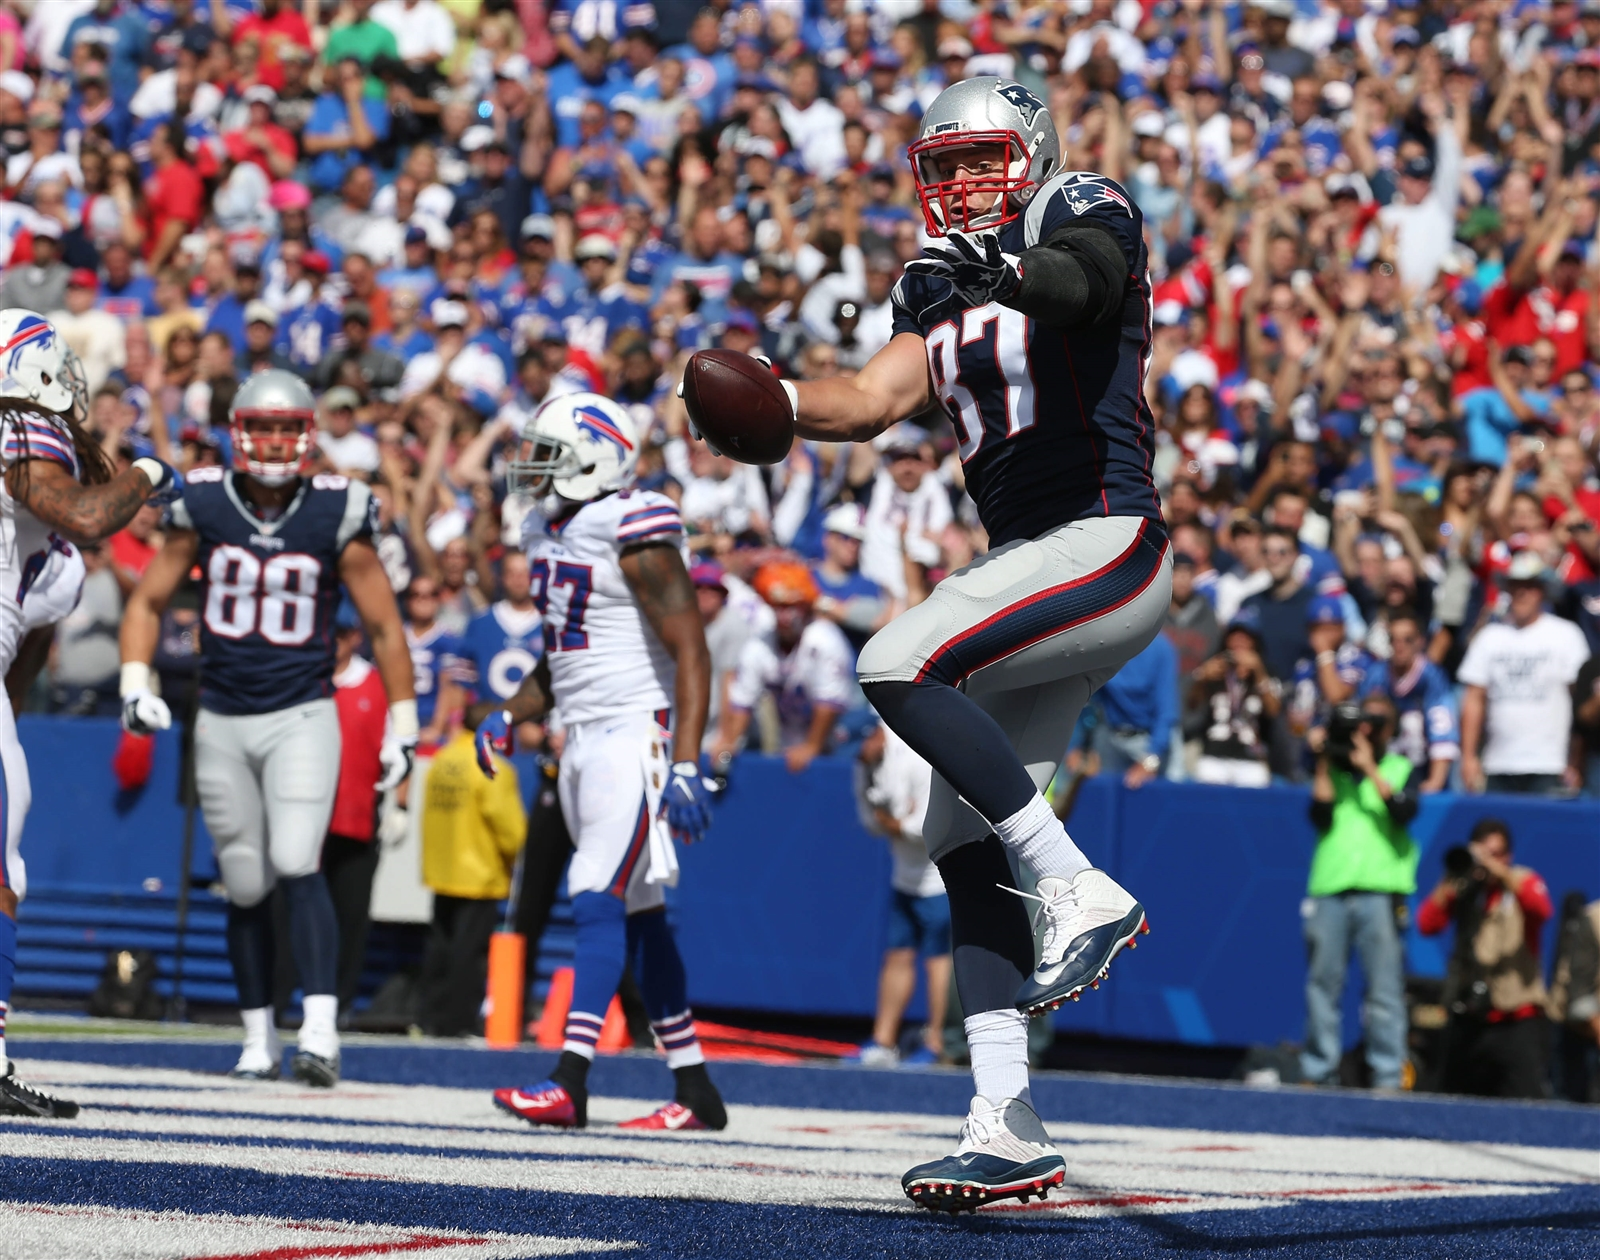 Rob Gronkowski gears up for a big spike in the first quarter. (Buffalo News)